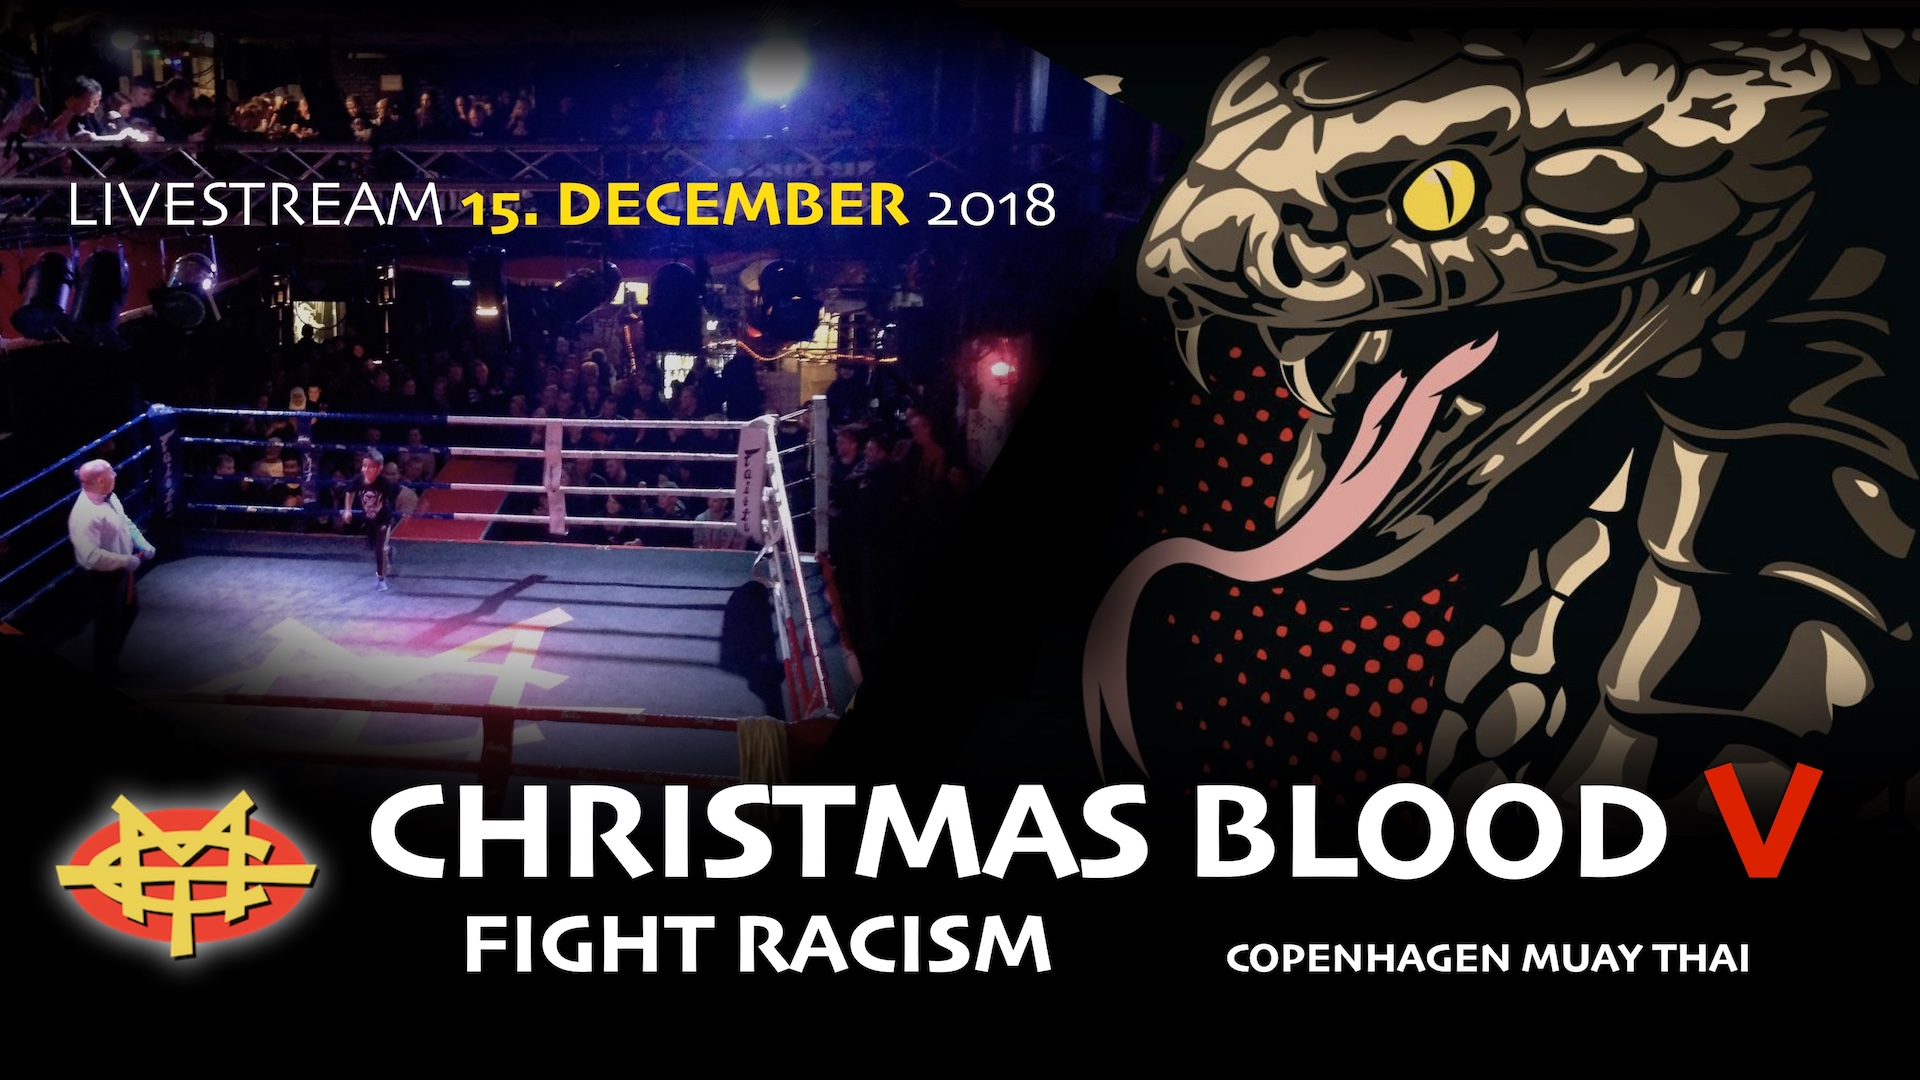 Christmas blood V